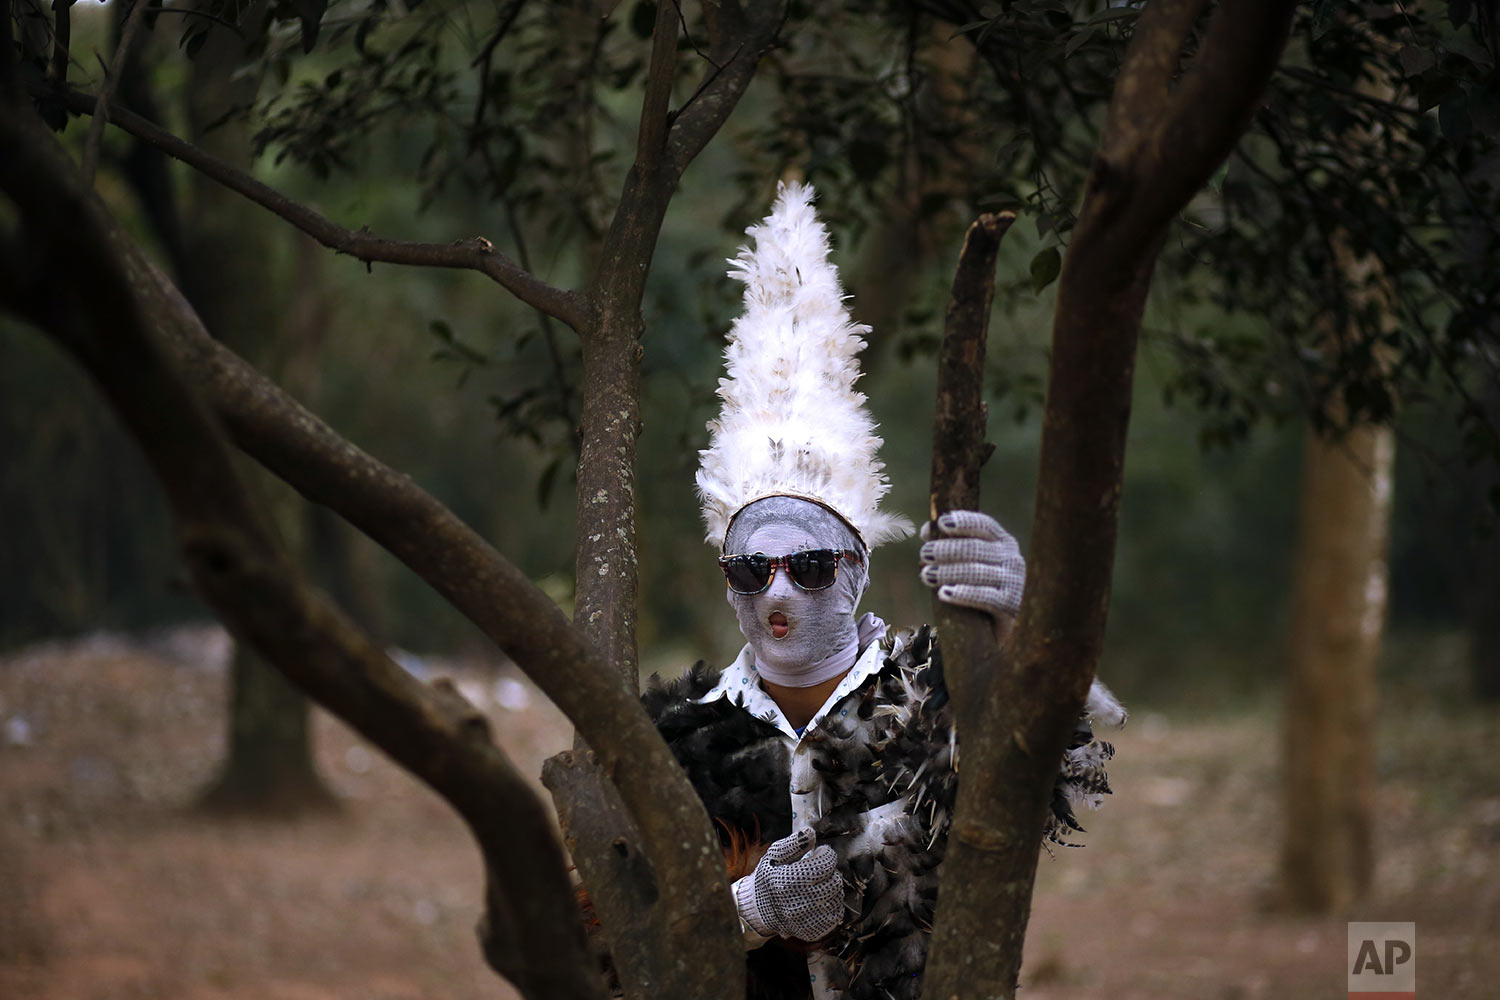 Agustin Armoa poses for a portrait wearing his feathered costume during a Mass in honor of St. Francis Solano in Emboscada, Paraguay, Wednesday, July 24, 2019. Armoa has been a devotee for 15 years, attributing his recovery from a childhood illness to what he believes is the miraculous powers of St. Francis Solano. (AP Photo/Jorge Saenz)